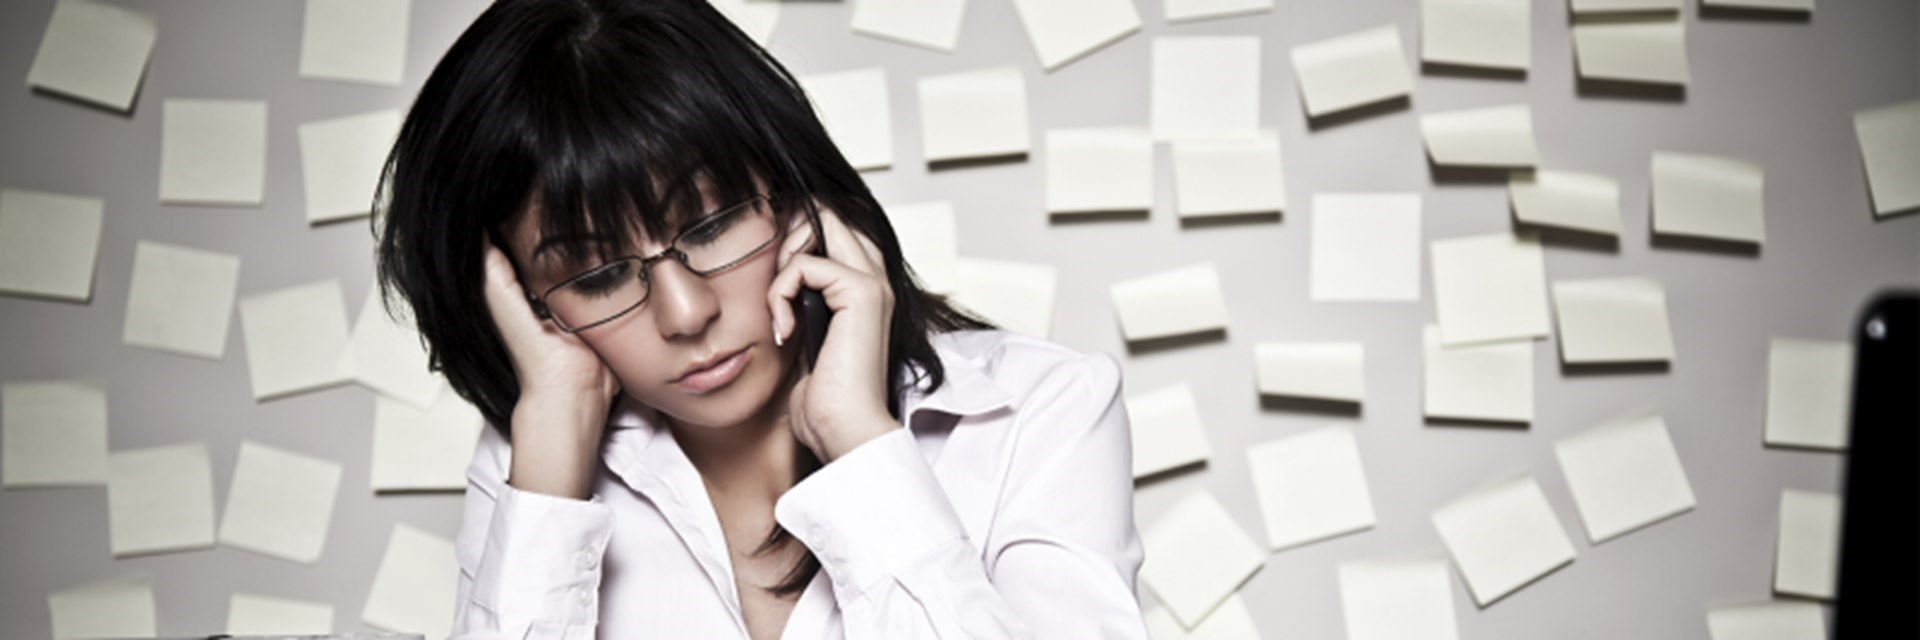 Woman looking overwhelmed with multiple post-it notes in the background